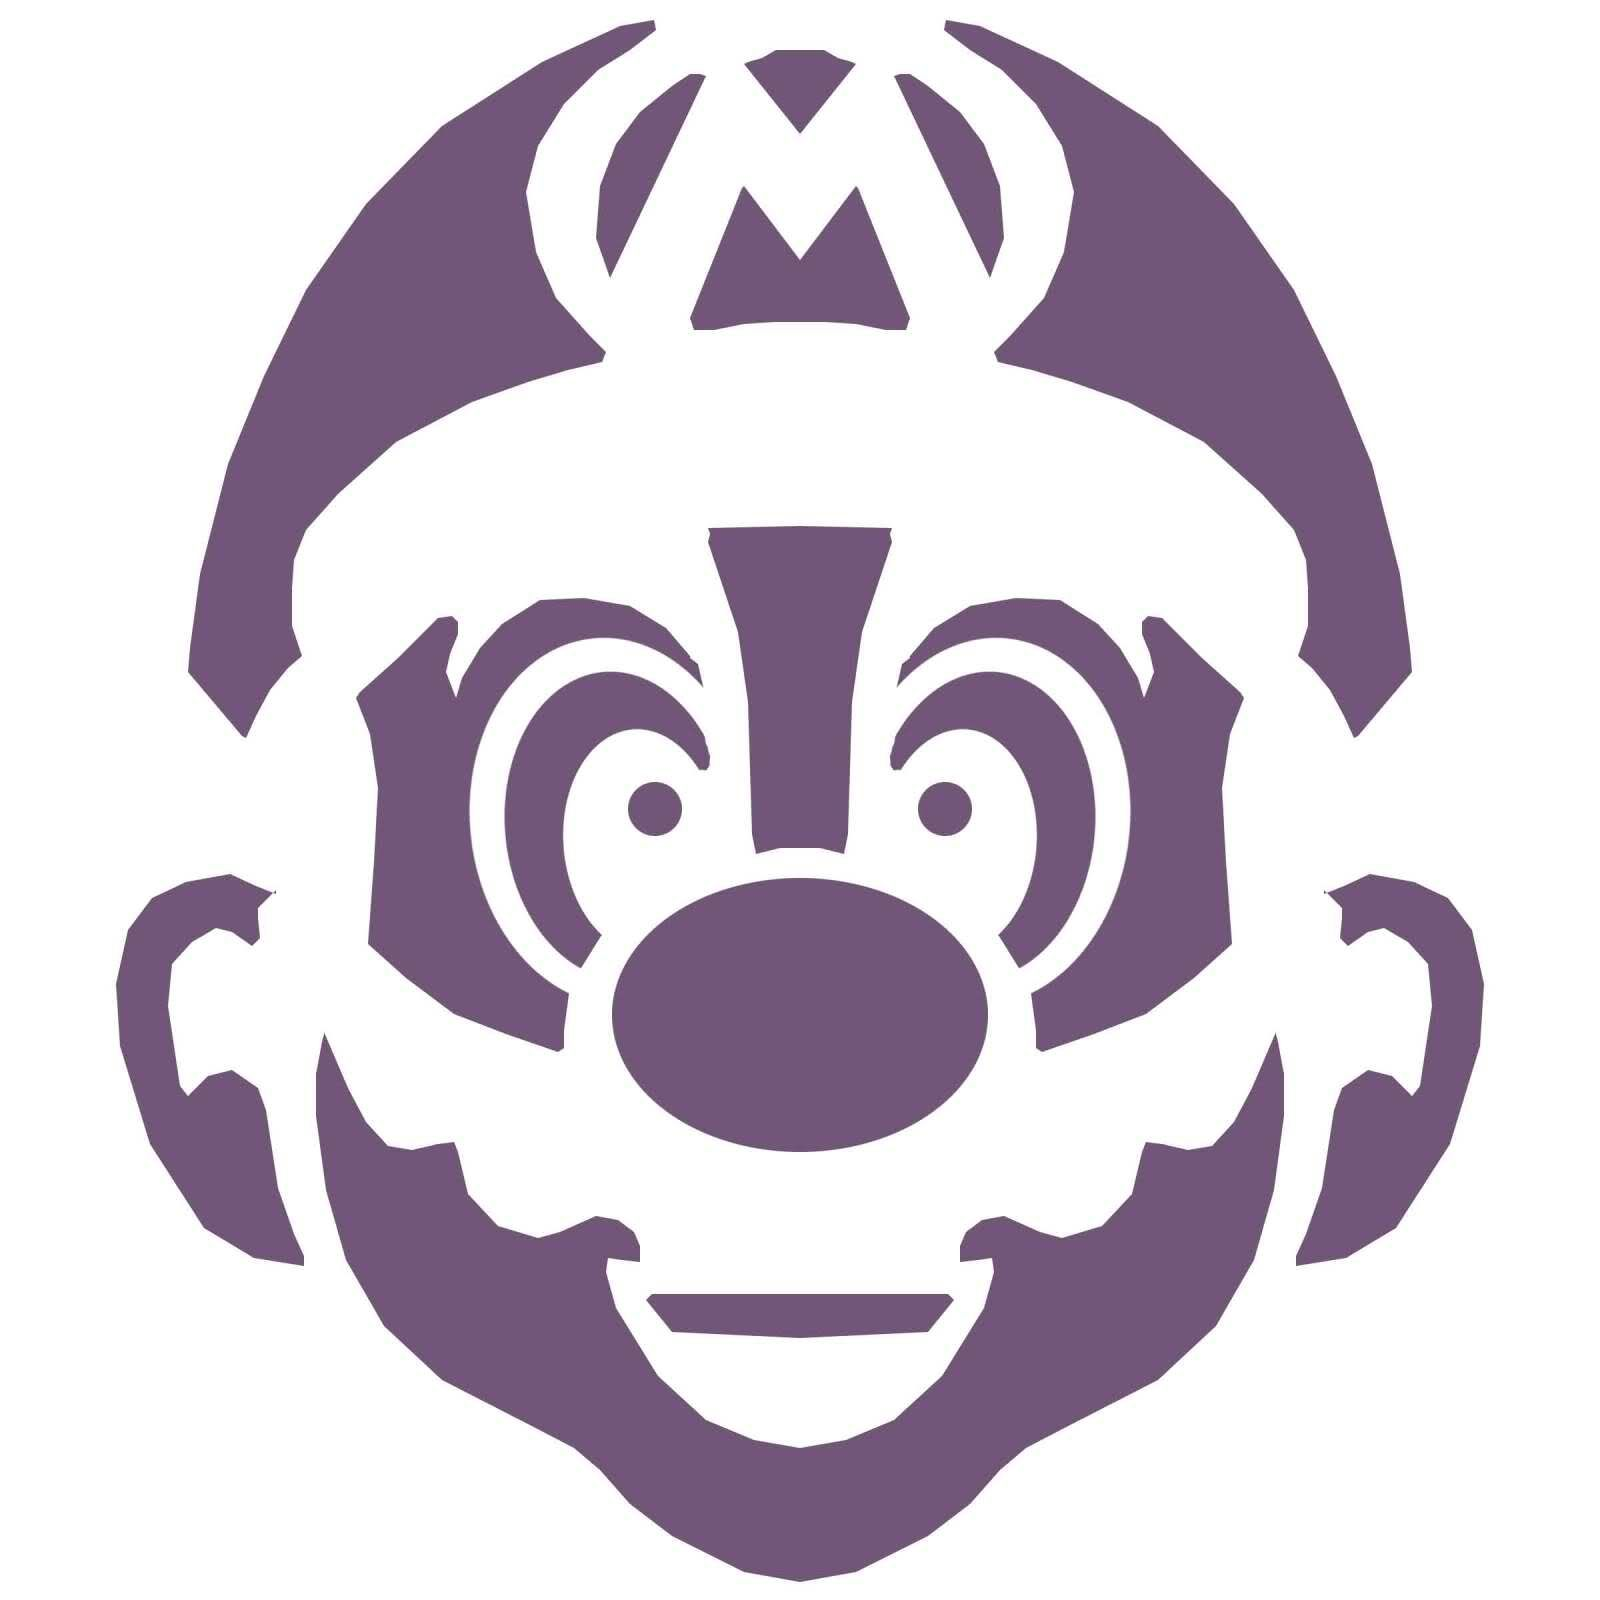 Mario Pumpkin  Spookify Your Pumpkin With A Mario Pumpkin Stencil